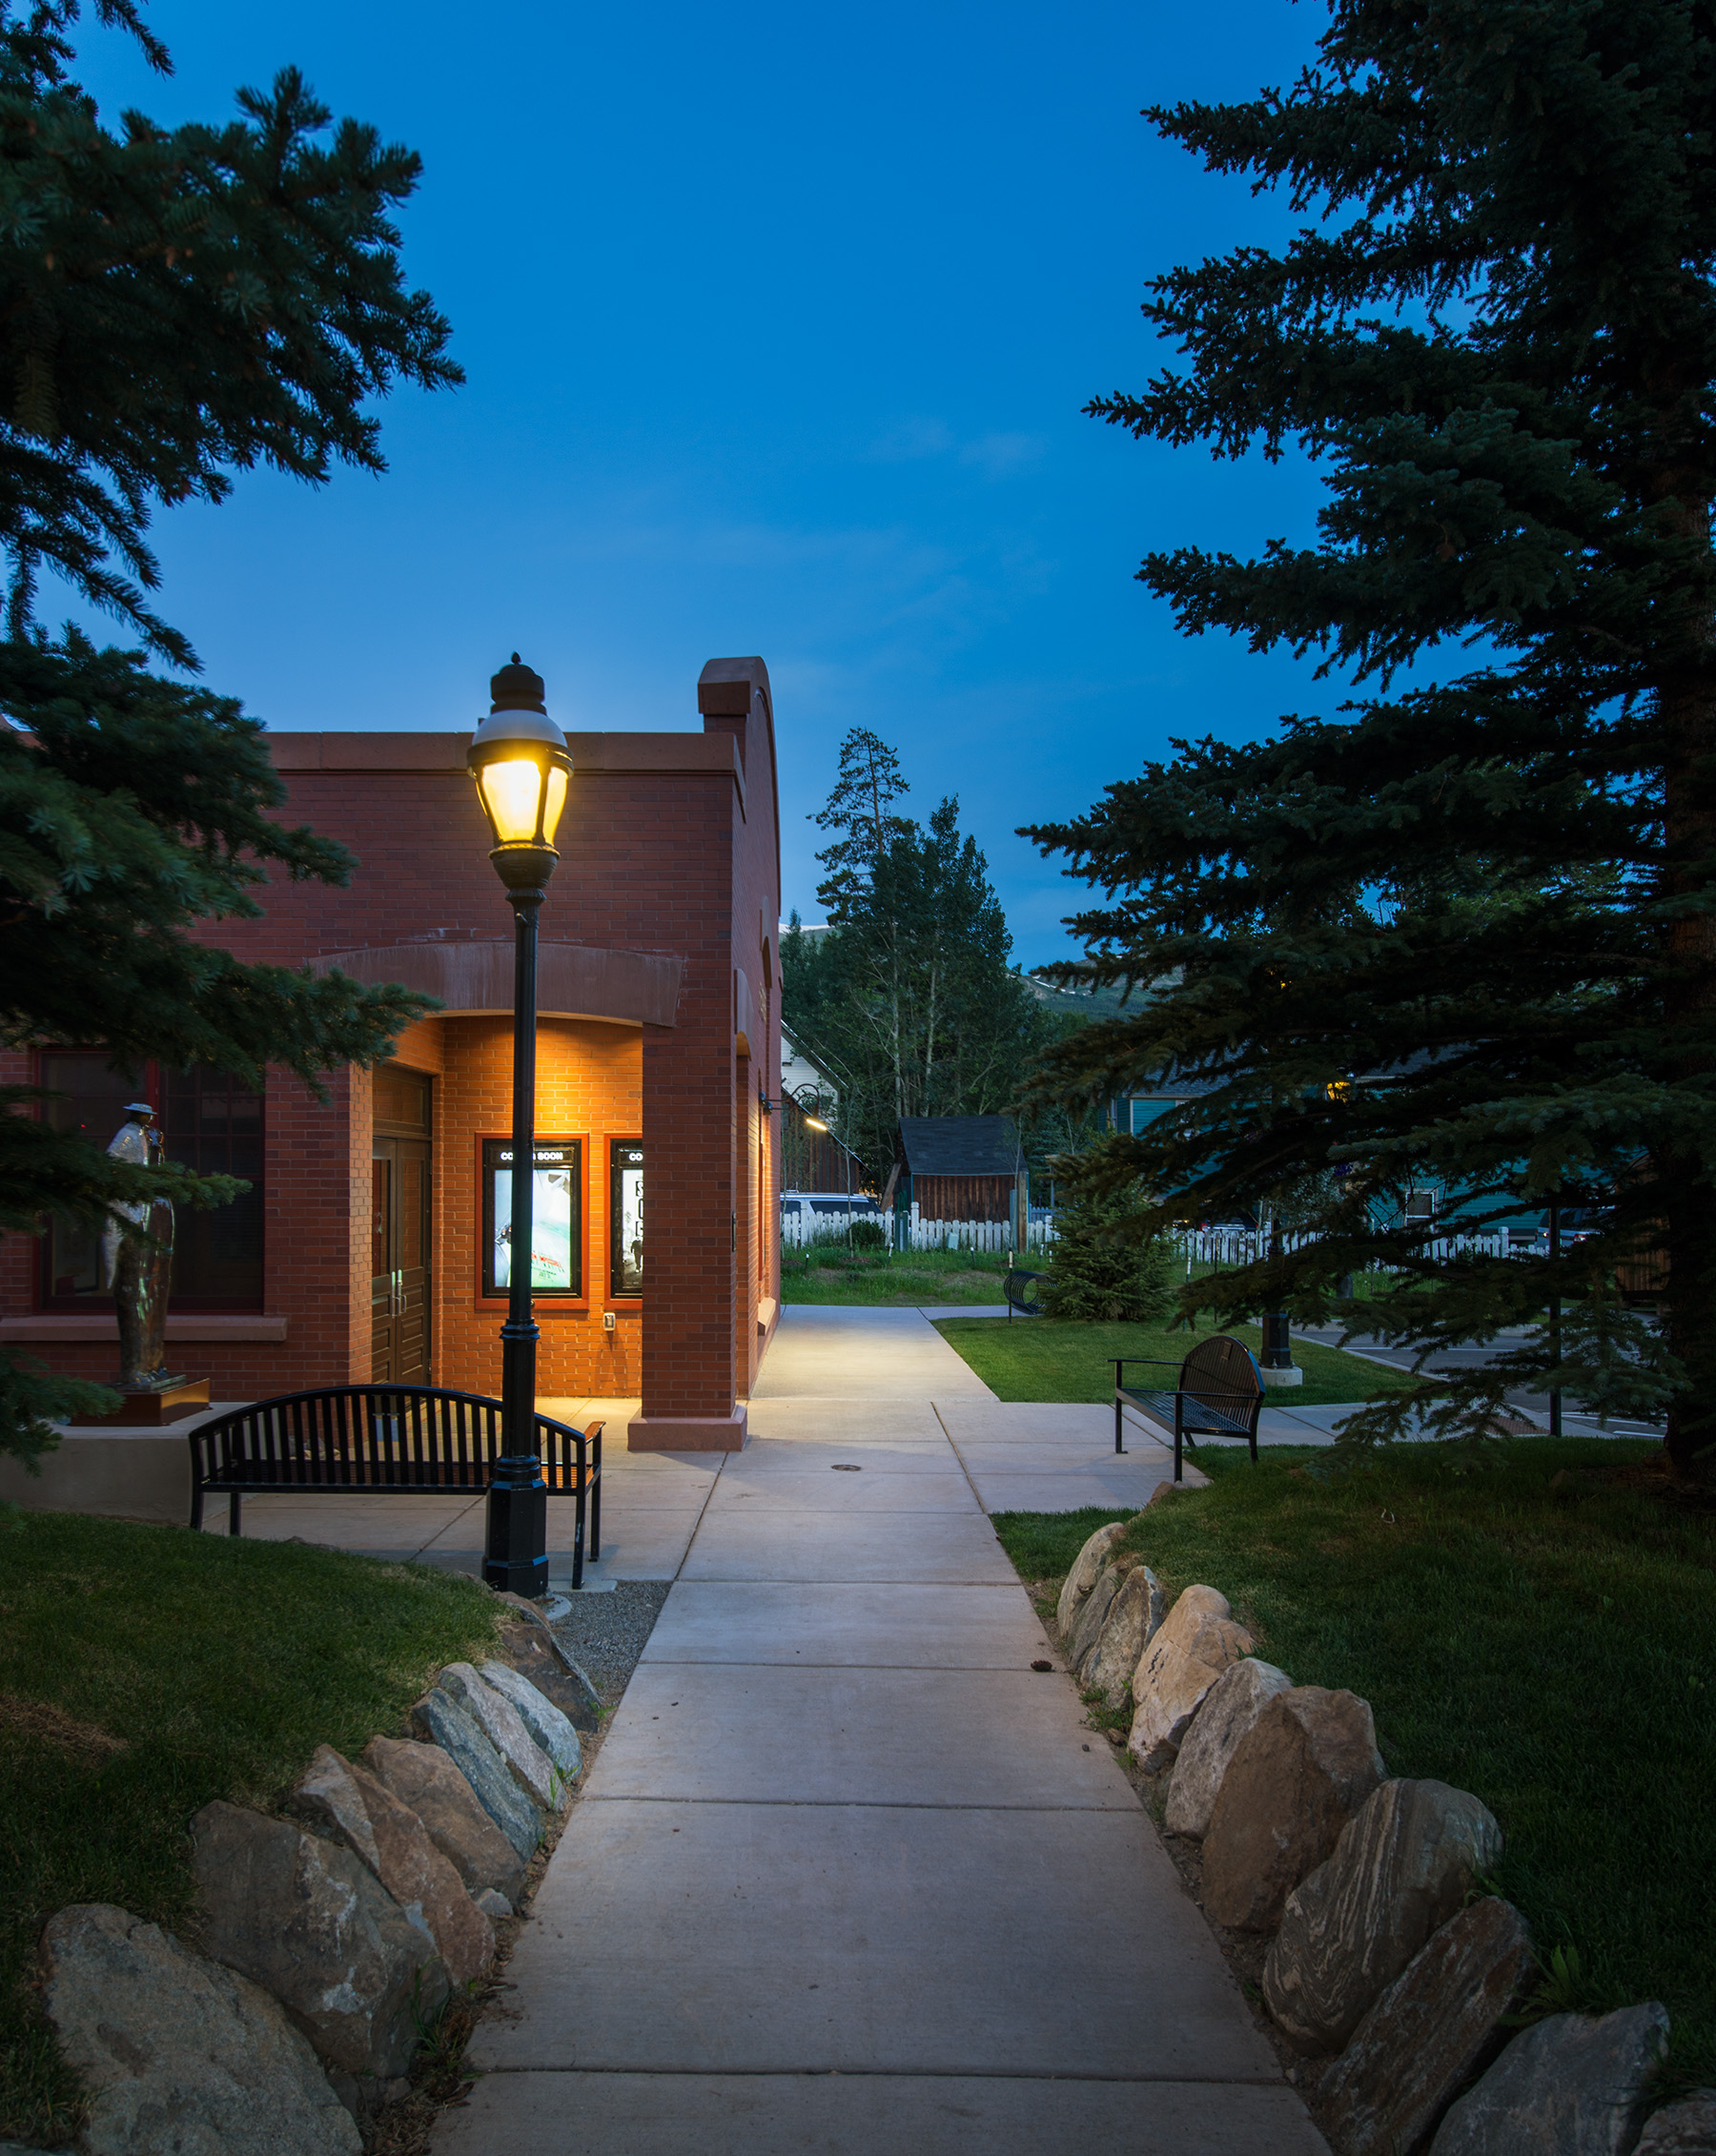 BRECKENRIDGE GRAND VACATIONS COMMUNITY CENTER AND SUMMIT COUNTY BRANCH LIBRARY